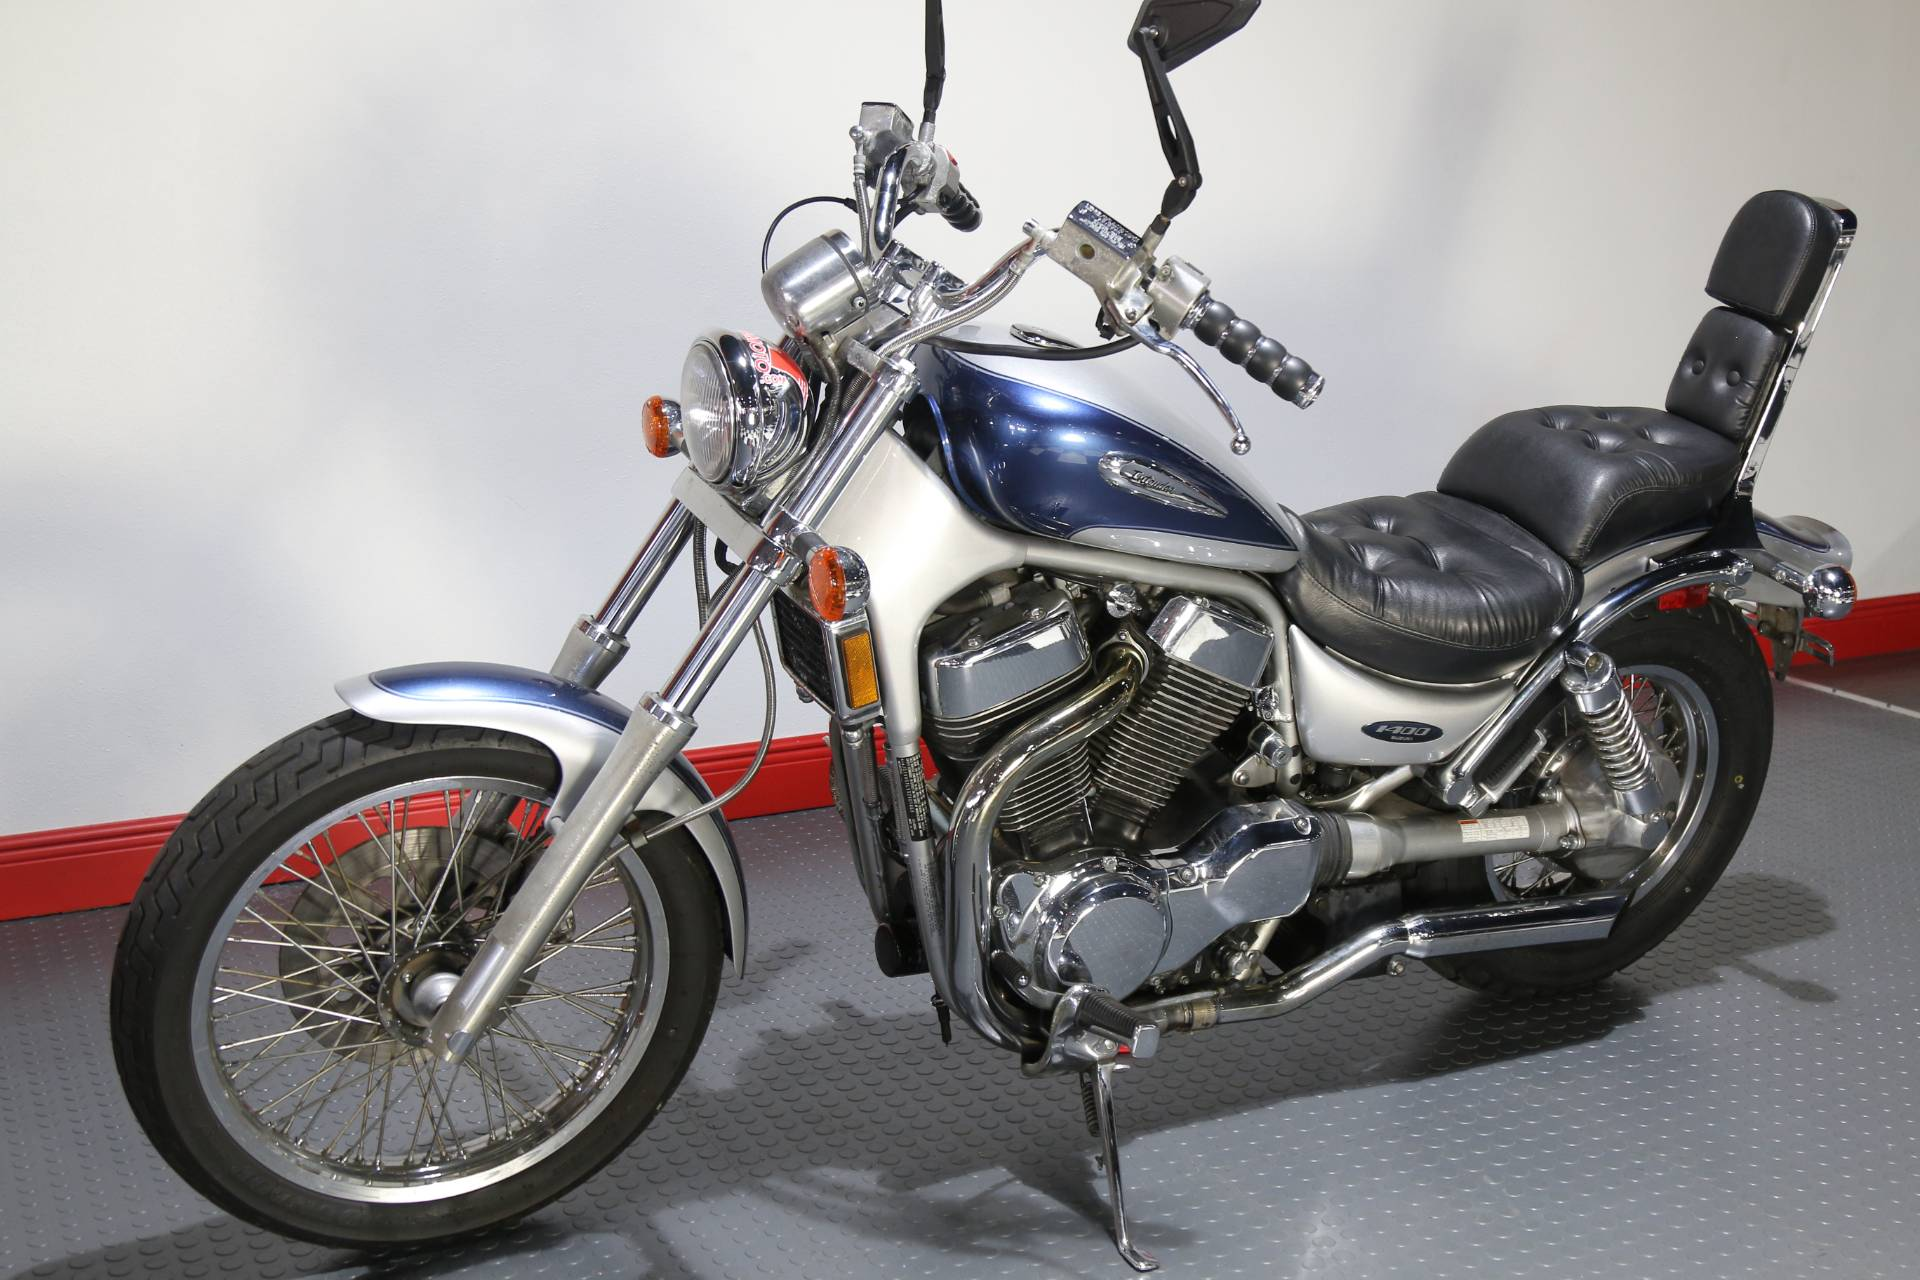 used 2003 suzuki intruder 1400 motorcycles in pinellas. Black Bedroom Furniture Sets. Home Design Ideas